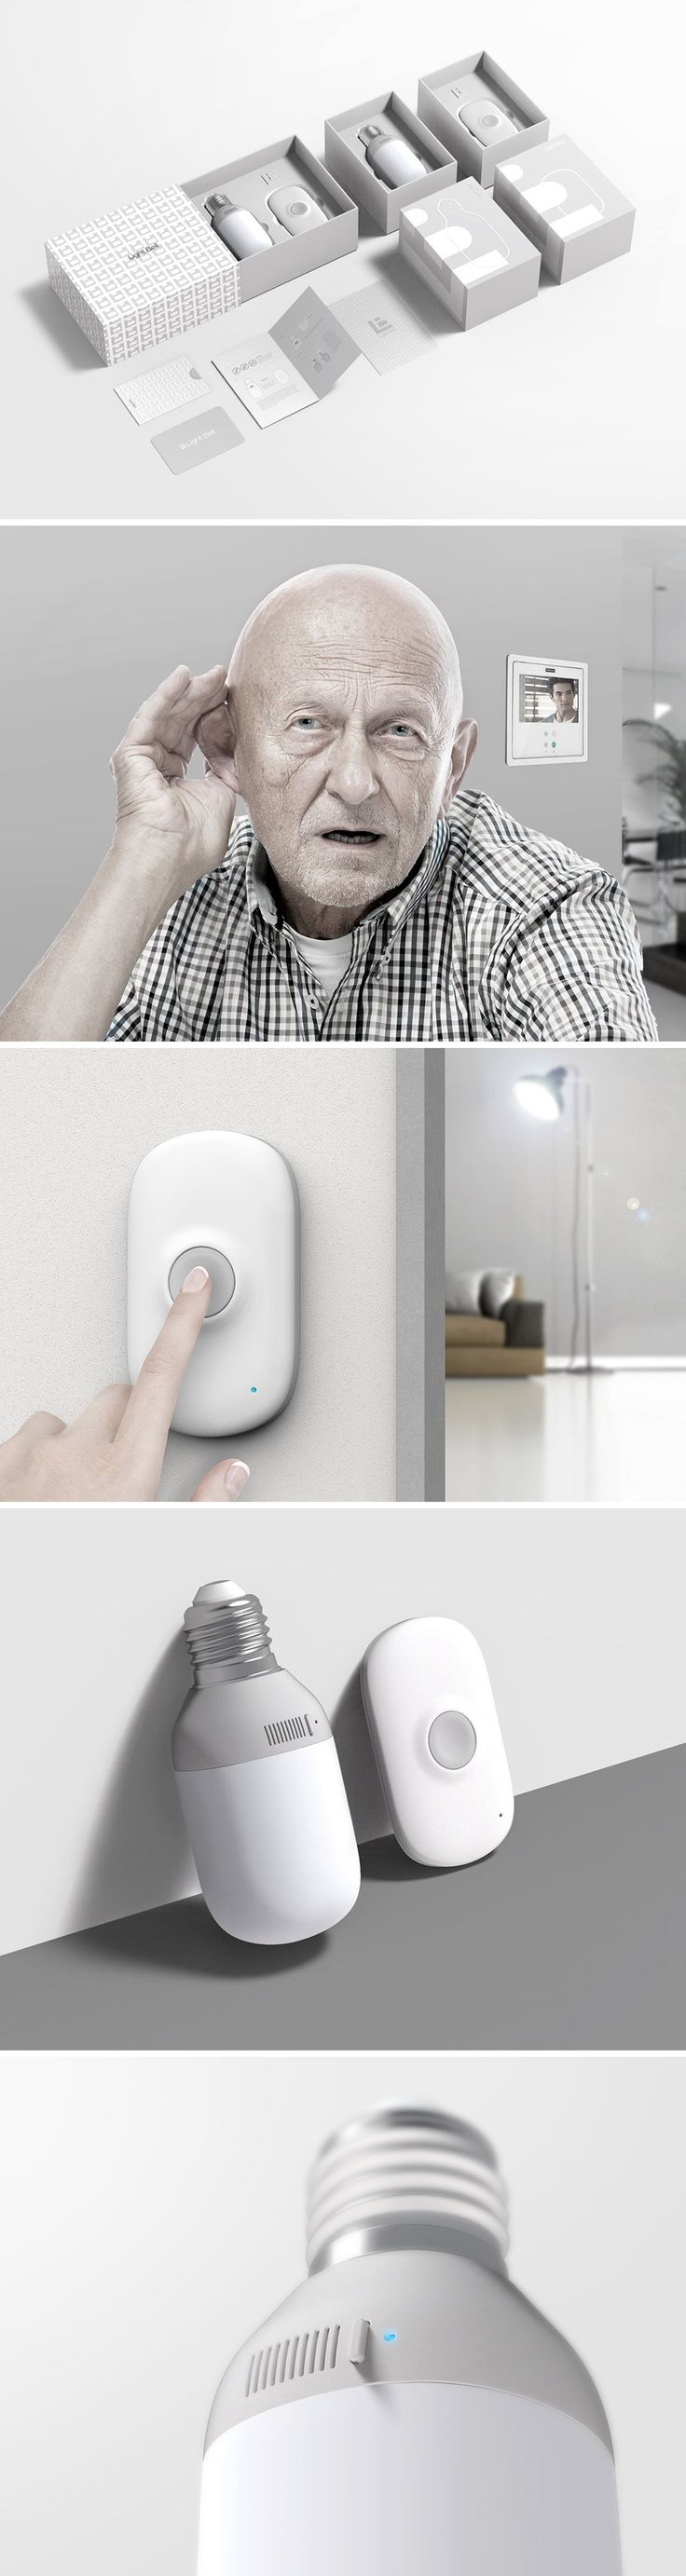 Light Bell was conceived to inform deaf users when there's a visitor at the door. Instead of a regular chime, the doorbell triggers a light signal using a specialized Bluetooth bulb. When the button is pressed, the light is wirelessly triggered to indicate the presence of someone at the door.